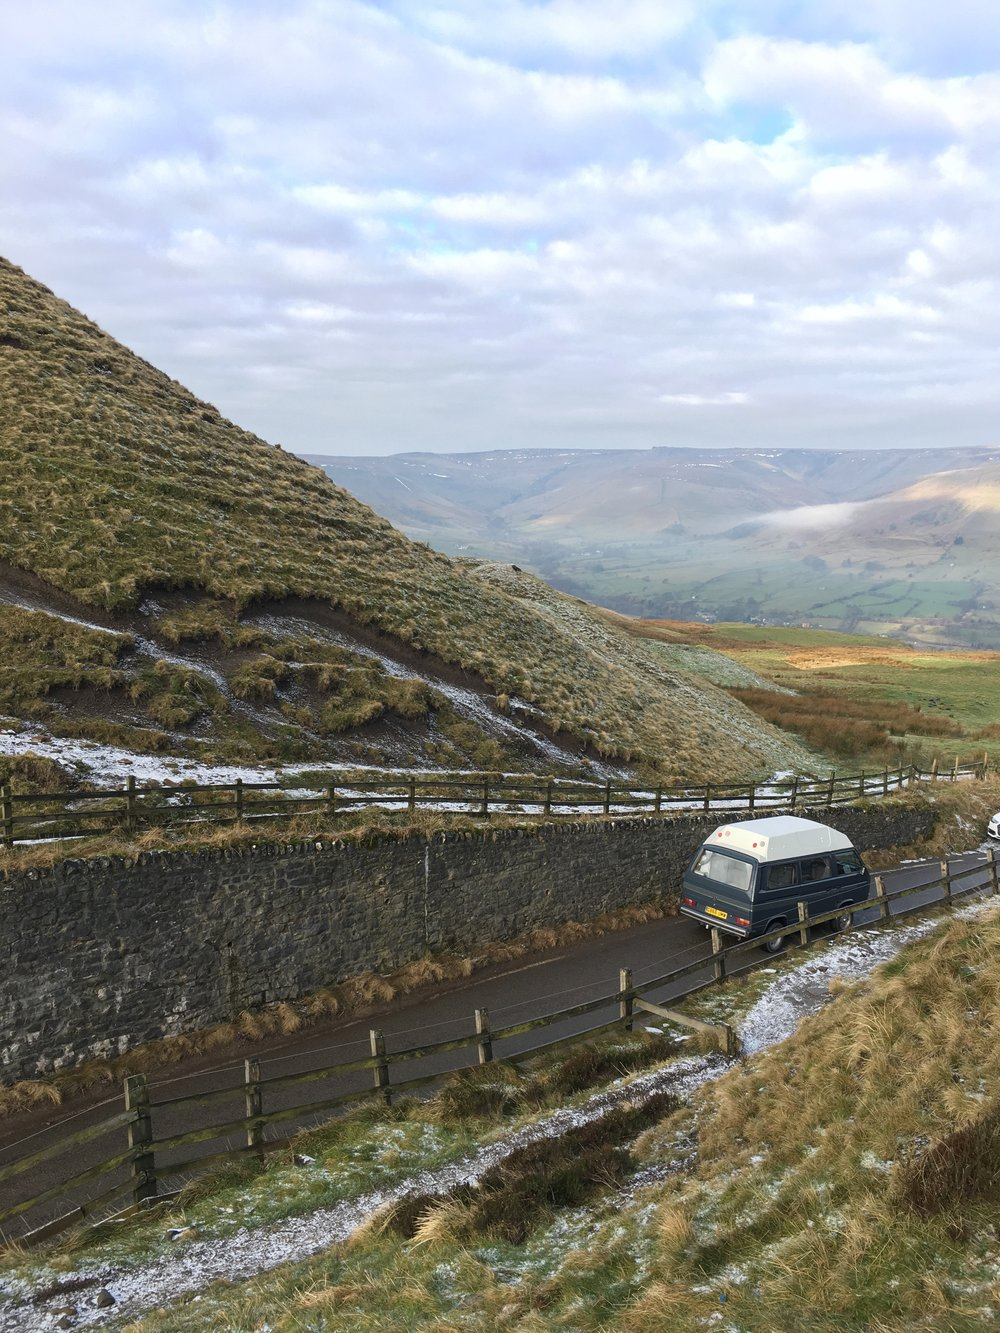 The Edale Road